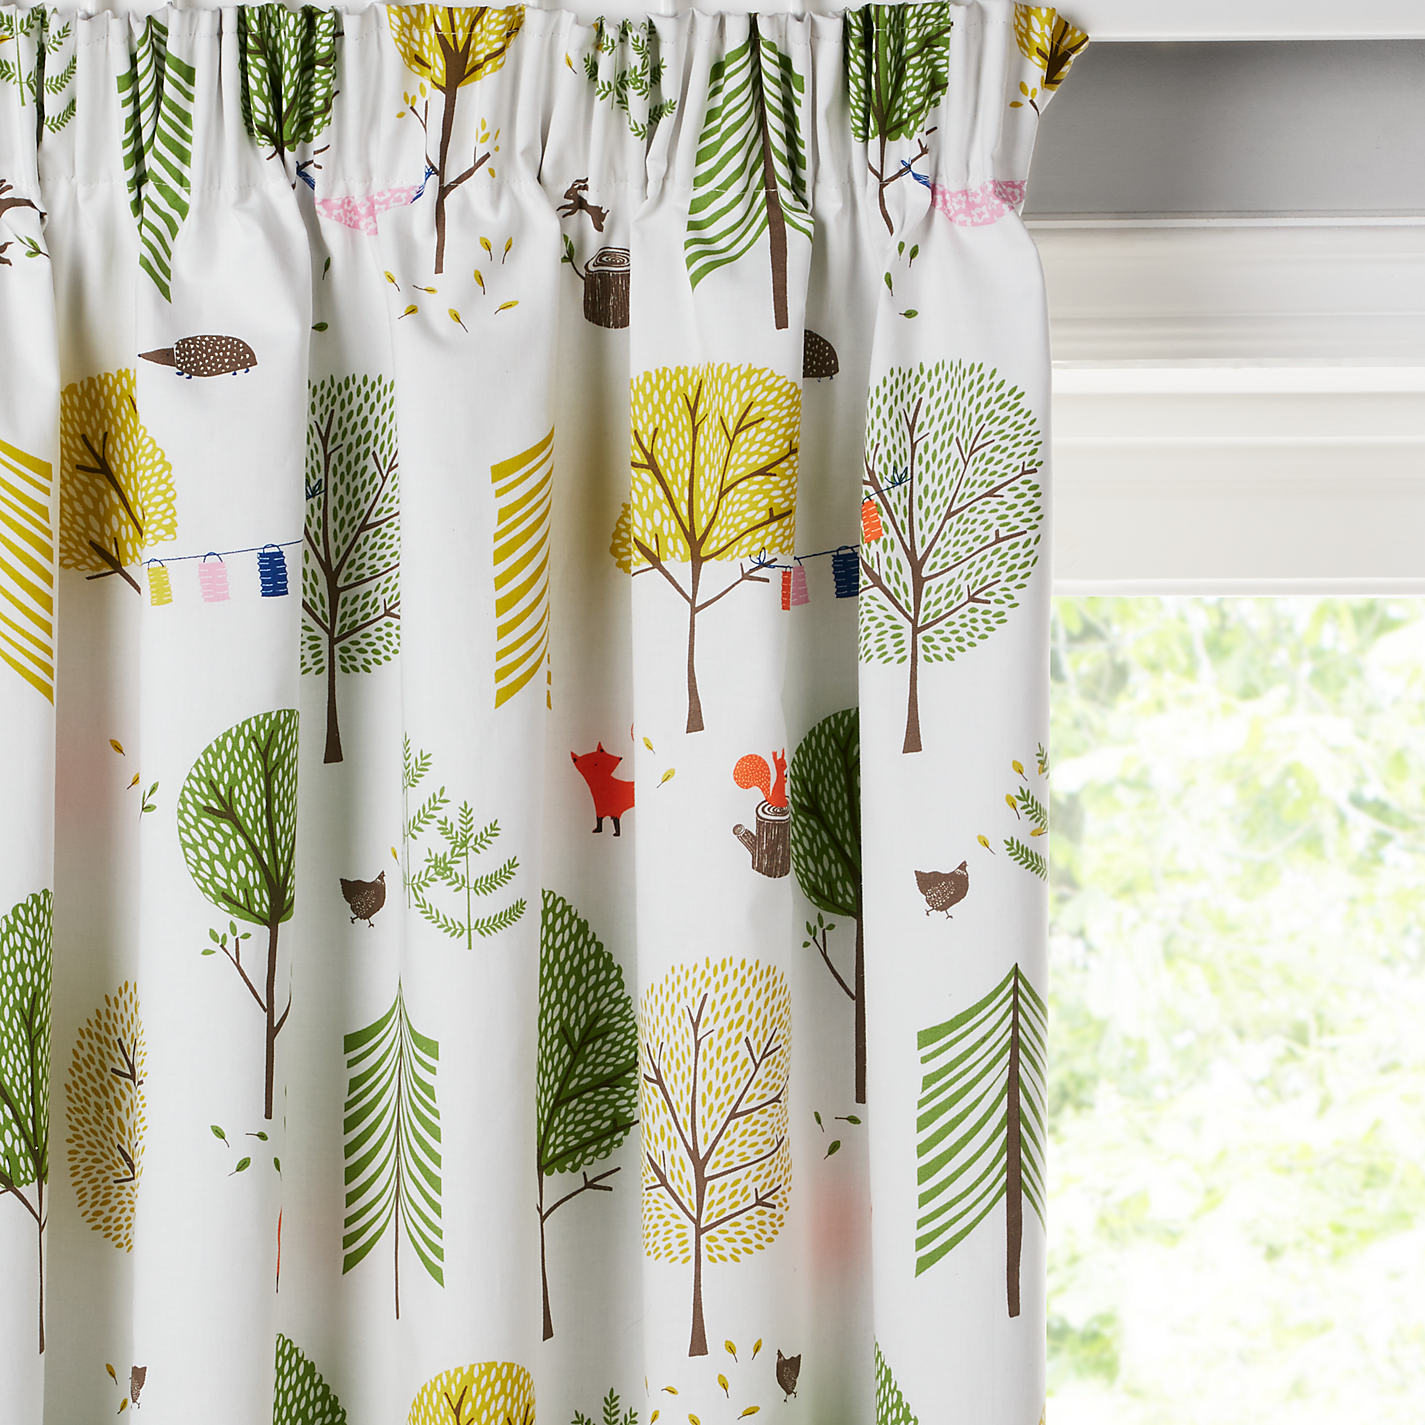 Grey and yellow curtains uk john lewis - Buy Little Home At John Lewis Camping Pencil Pleat Blackout Lined Children S Curtains Online At Johnlewis